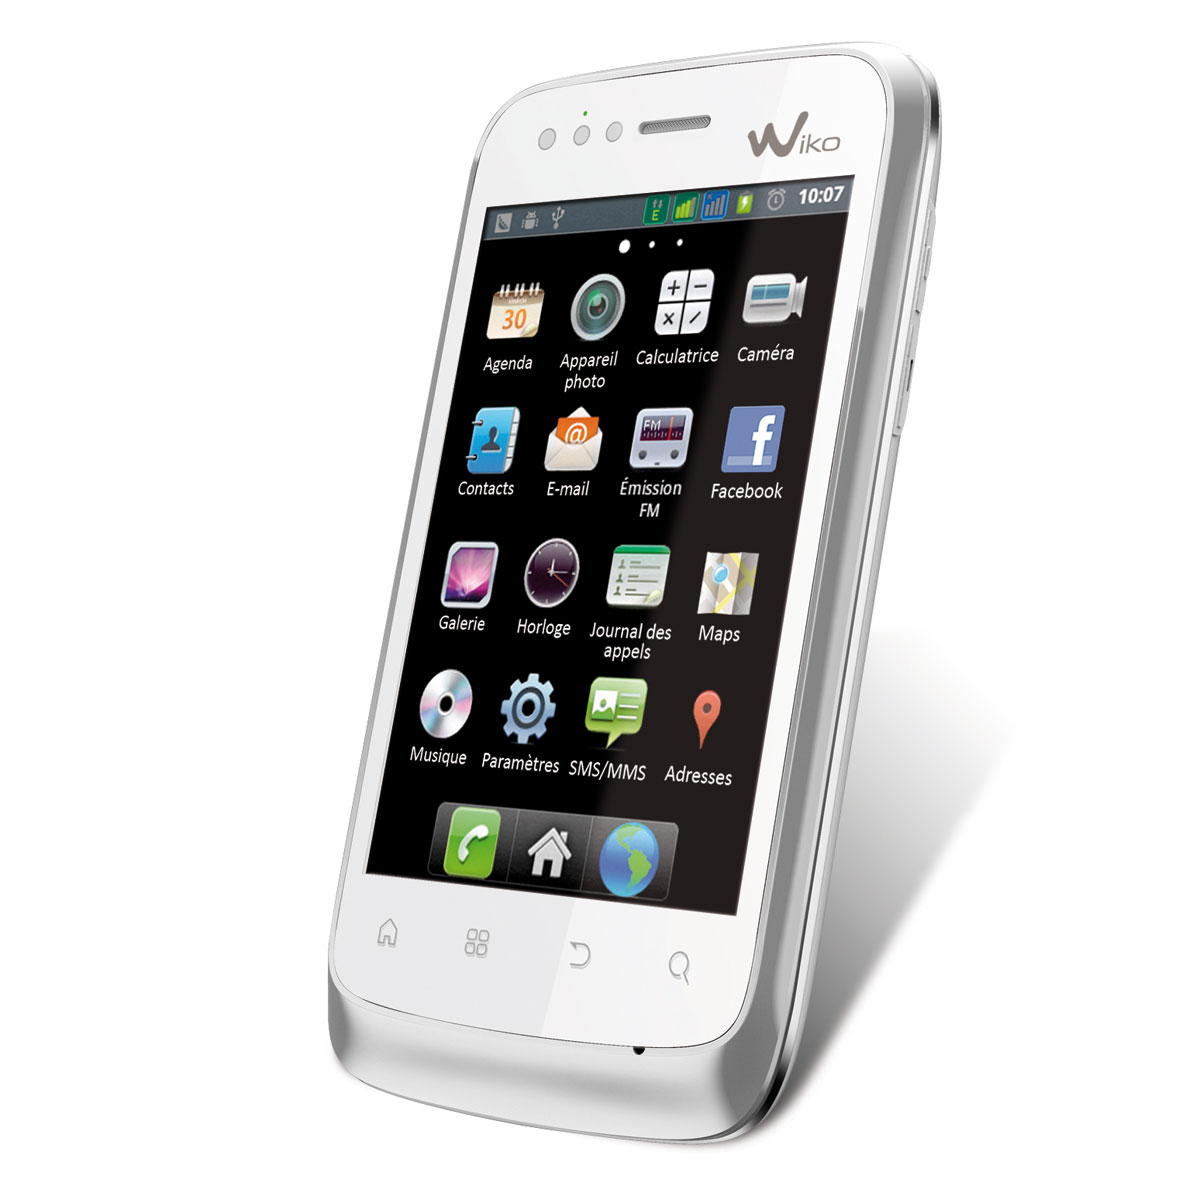 wiko cink blanc mobile smartphone wiko sur ldlc. Black Bedroom Furniture Sets. Home Design Ideas